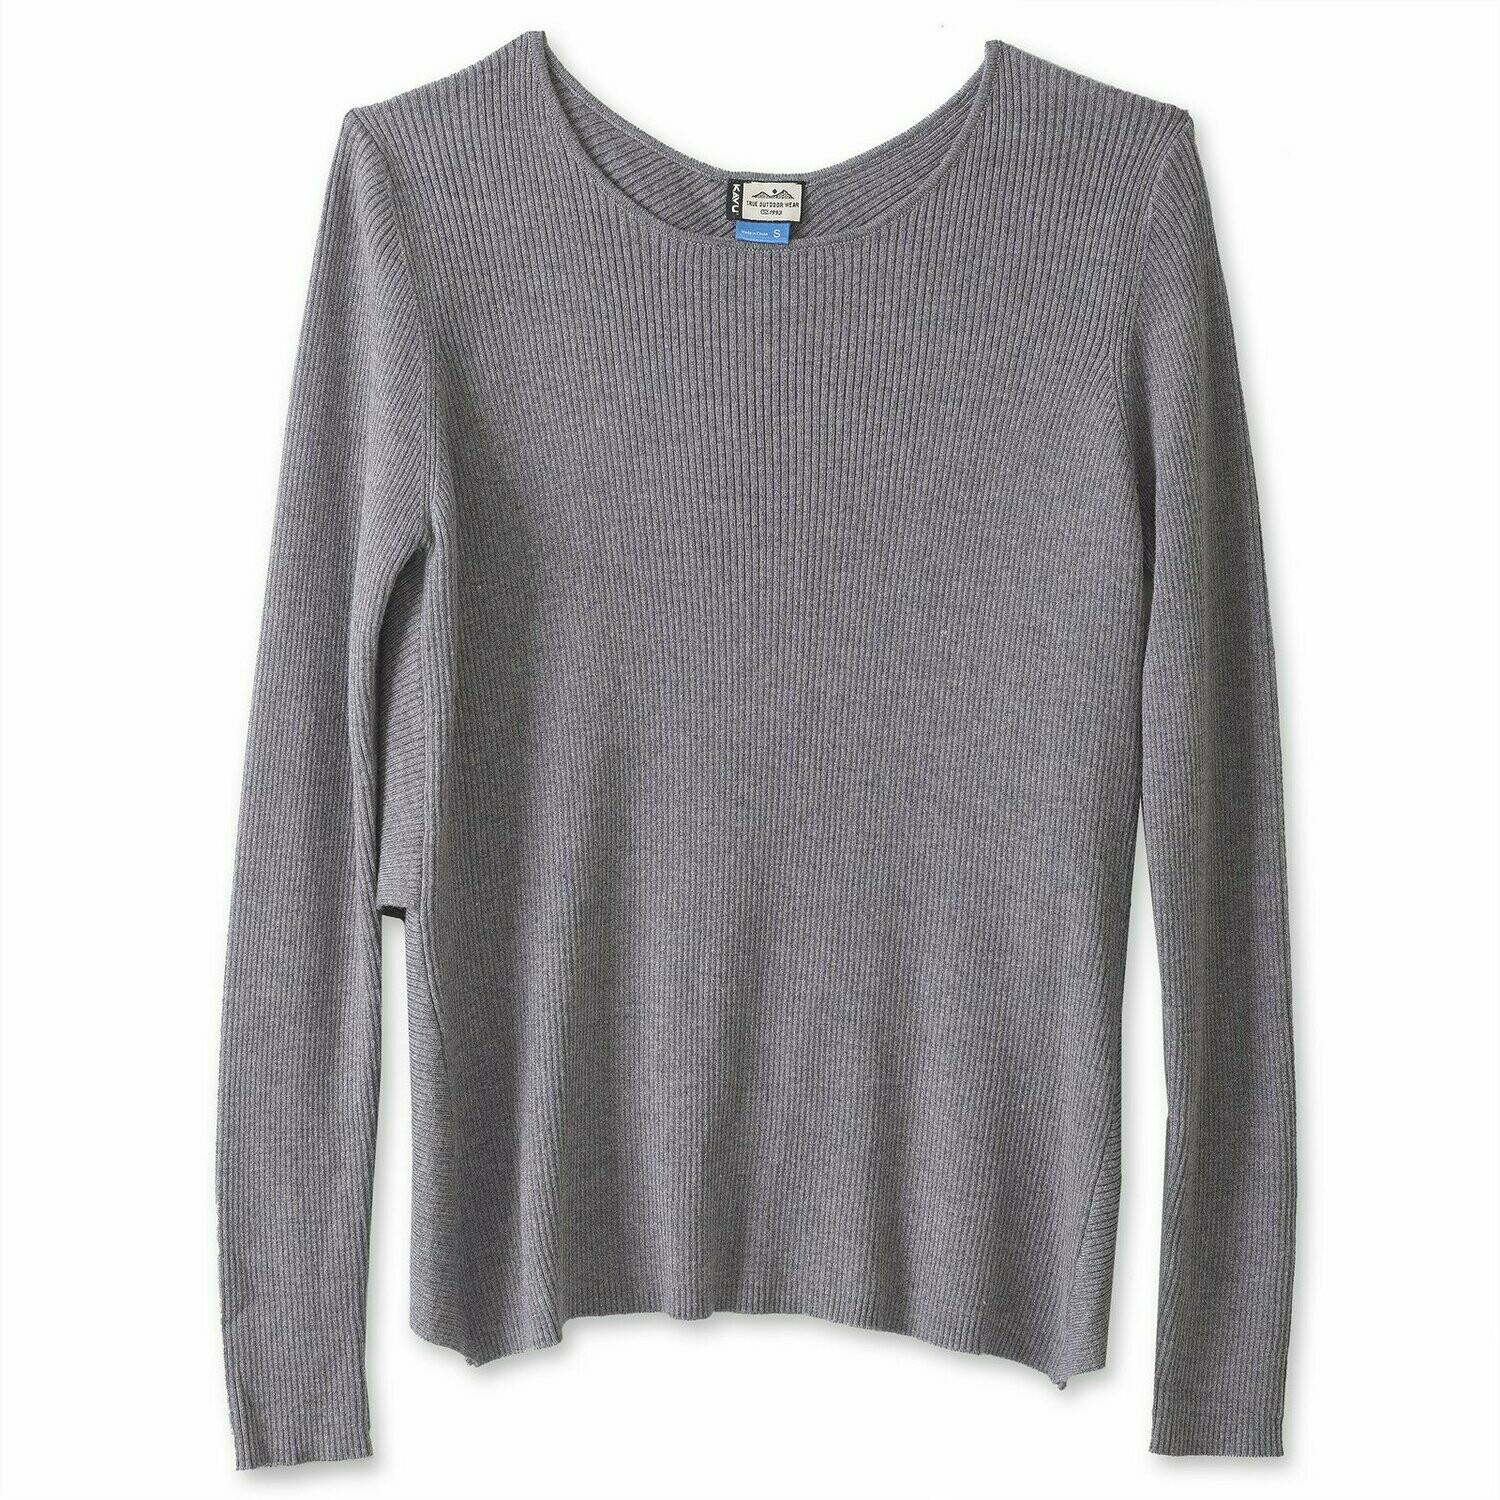 Kavu Rosebyrne Women's Sweater